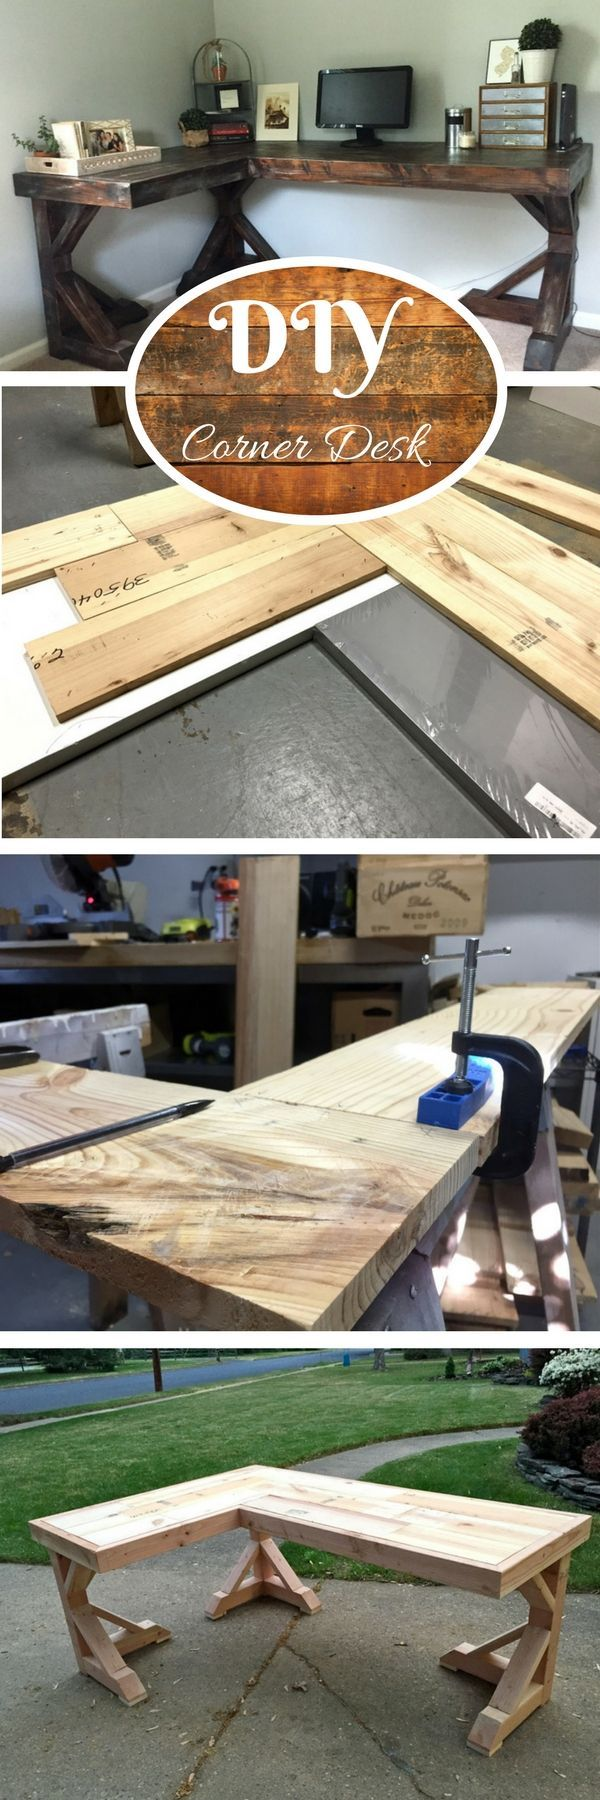 Check out the tutorial how to build a DIY corner desk @istandarddesign